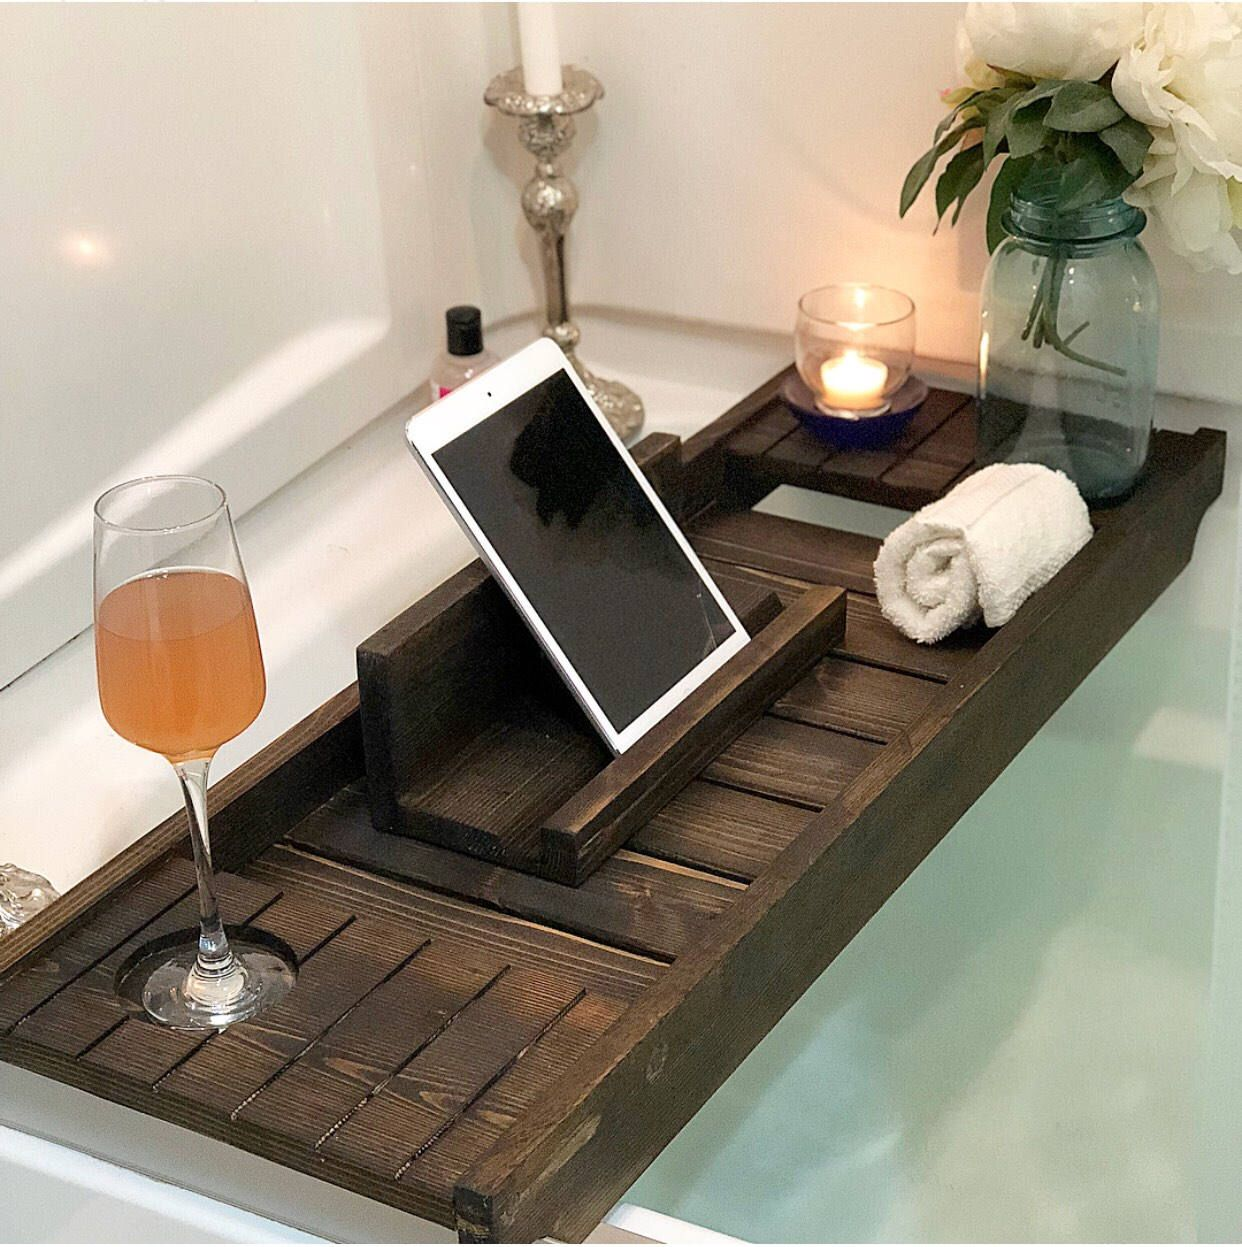 Bath Tray with Wine Holder, Bath Caddy, Bath Tray with IPad Holder ...